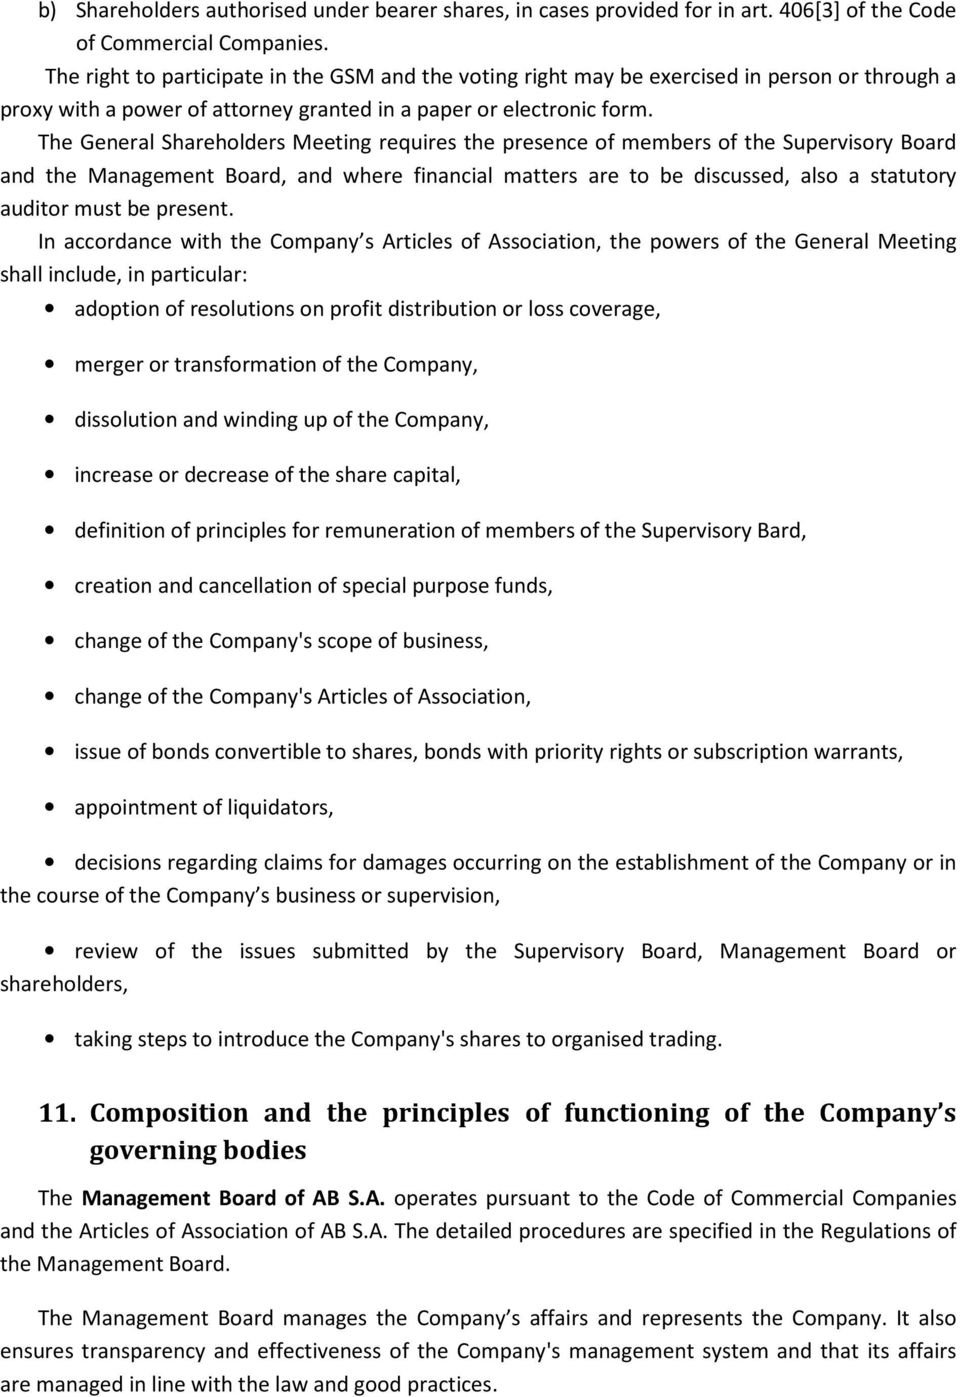 The General Shareholders Meeting requires the presence of members of the Supervisory Board and the Management Board, and where financial matters are to be discussed, also a statutory auditor must be